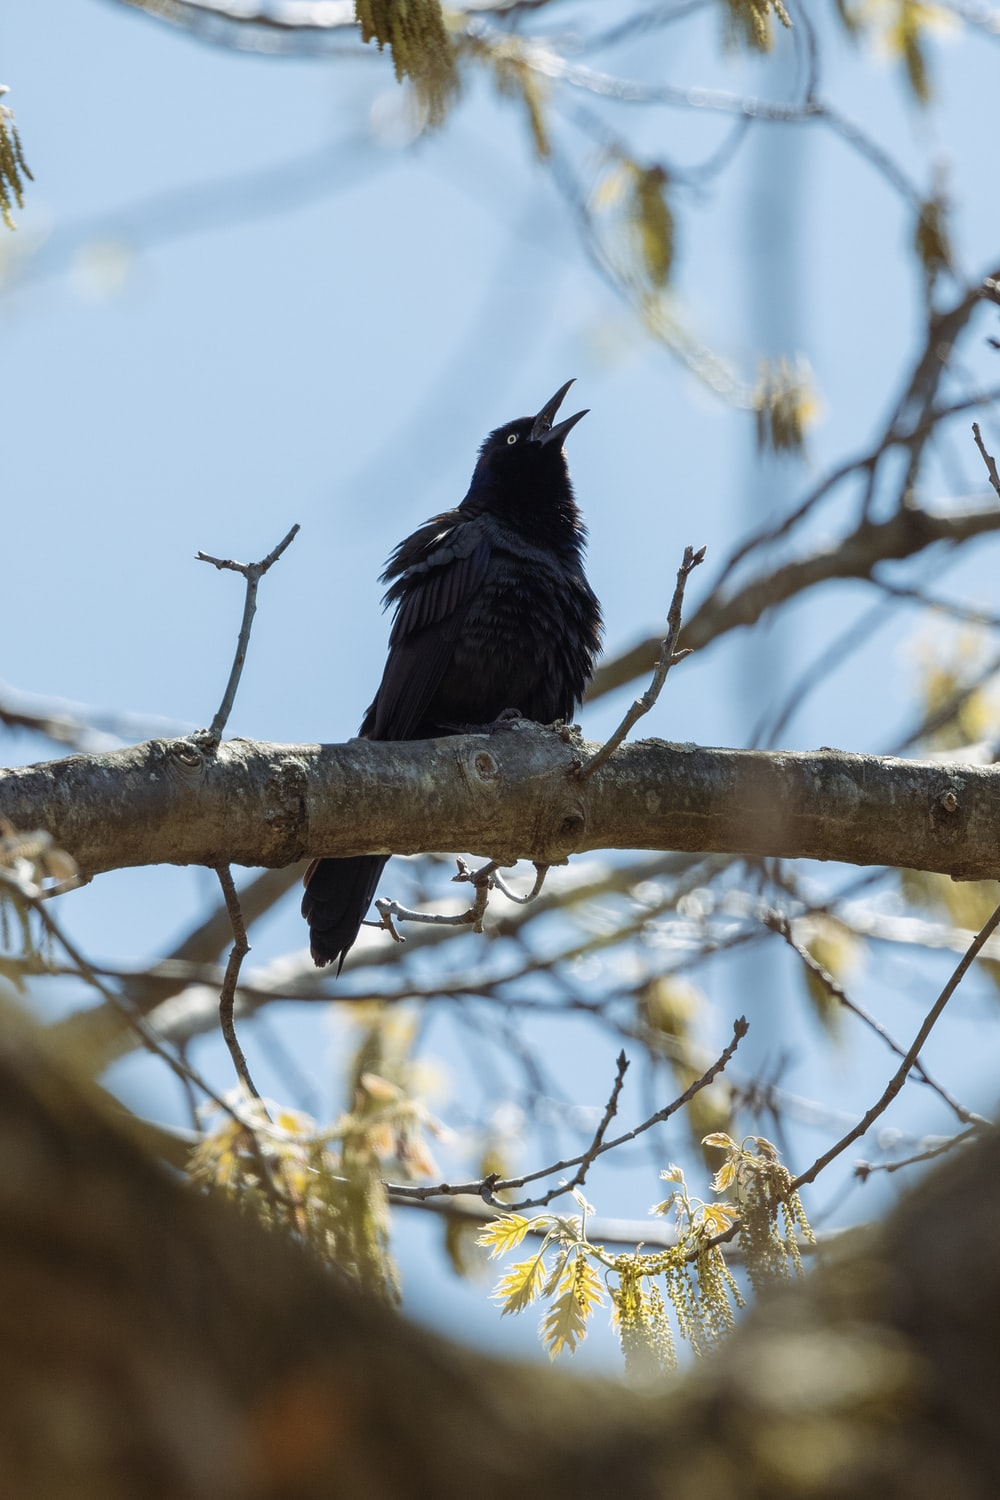 black crow perched on brown tree branch during daytime